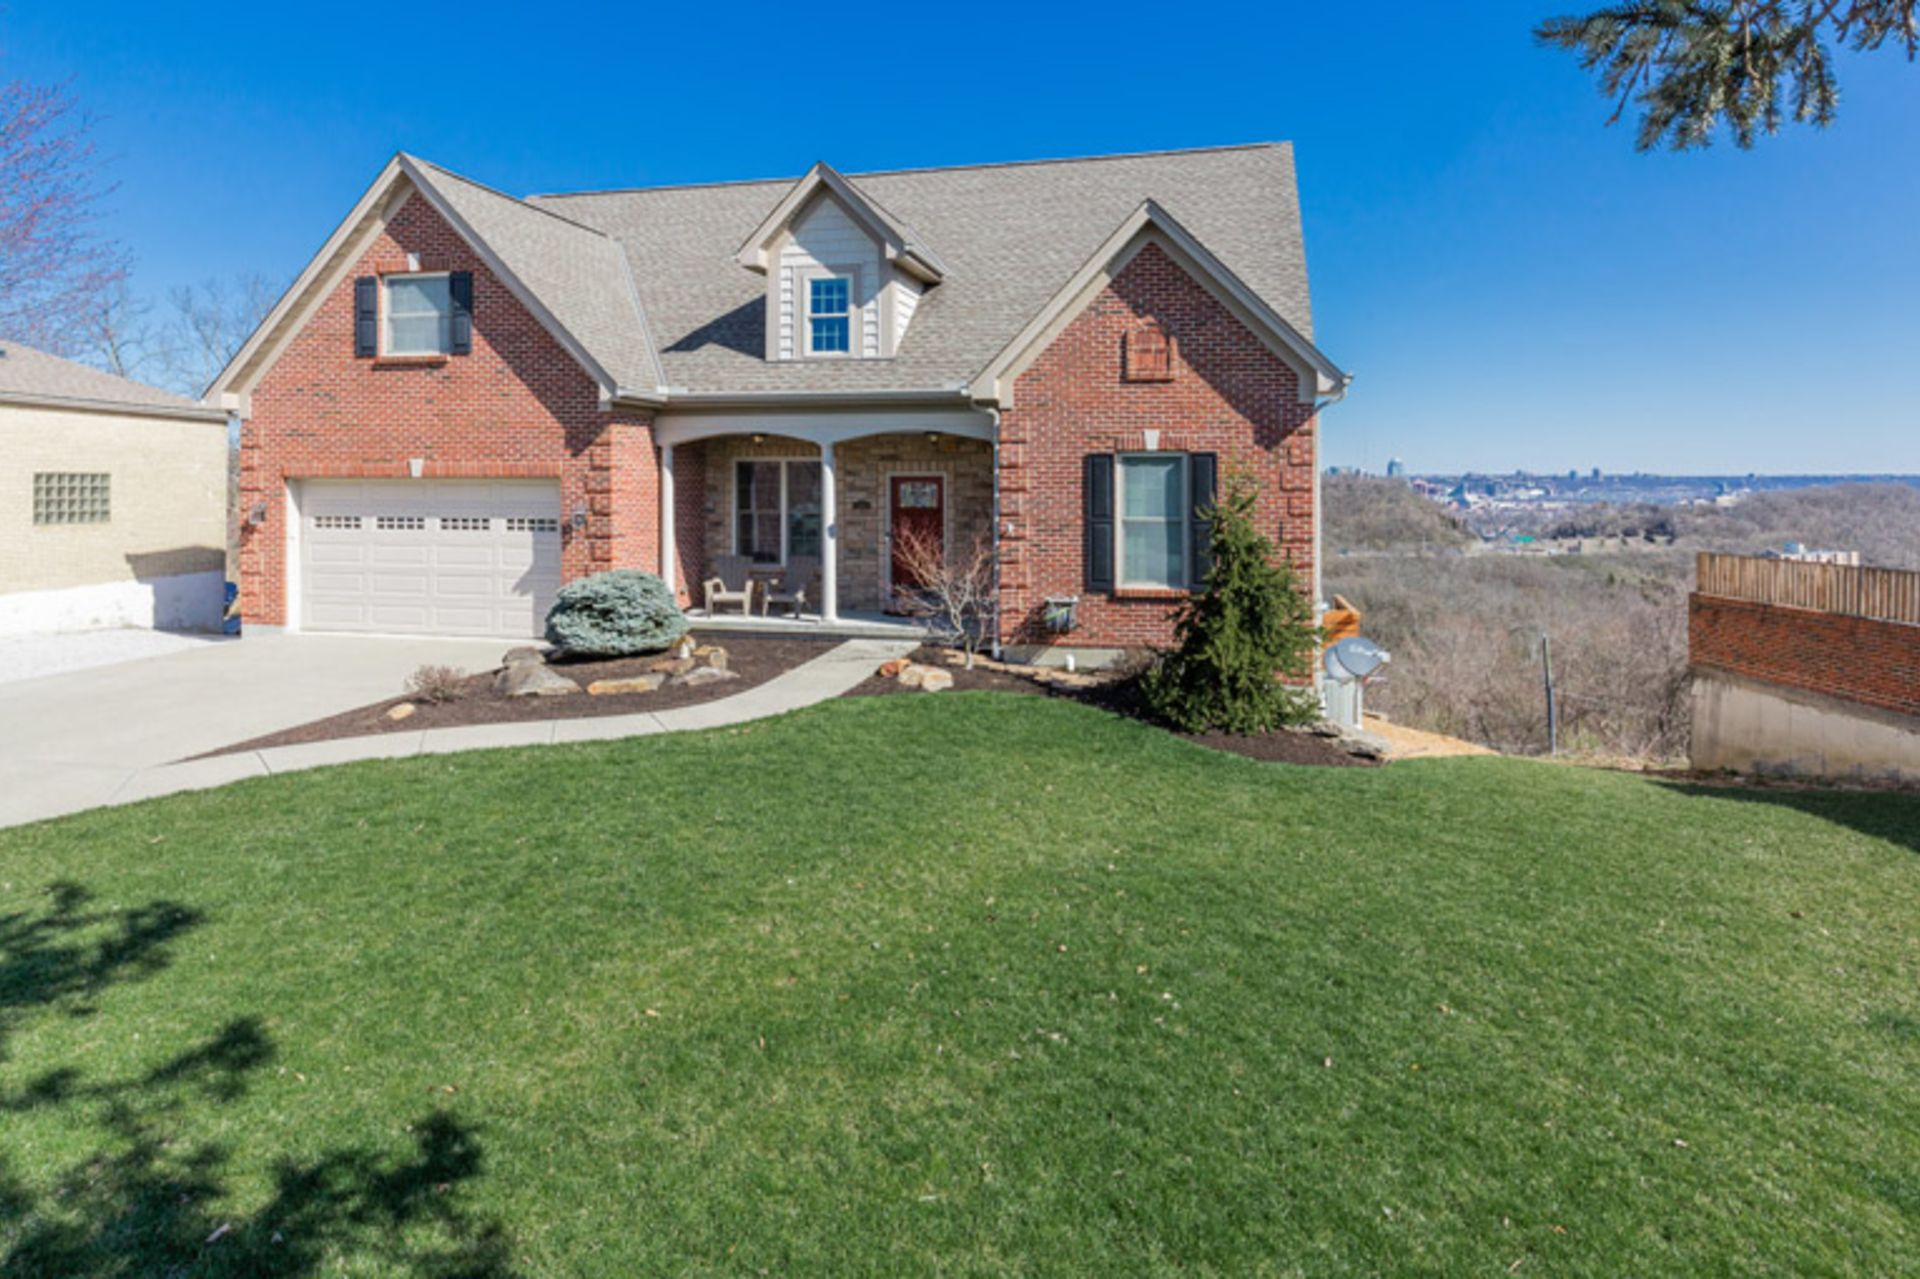 New Listing! 1226 Upland Ave in Fort Wright